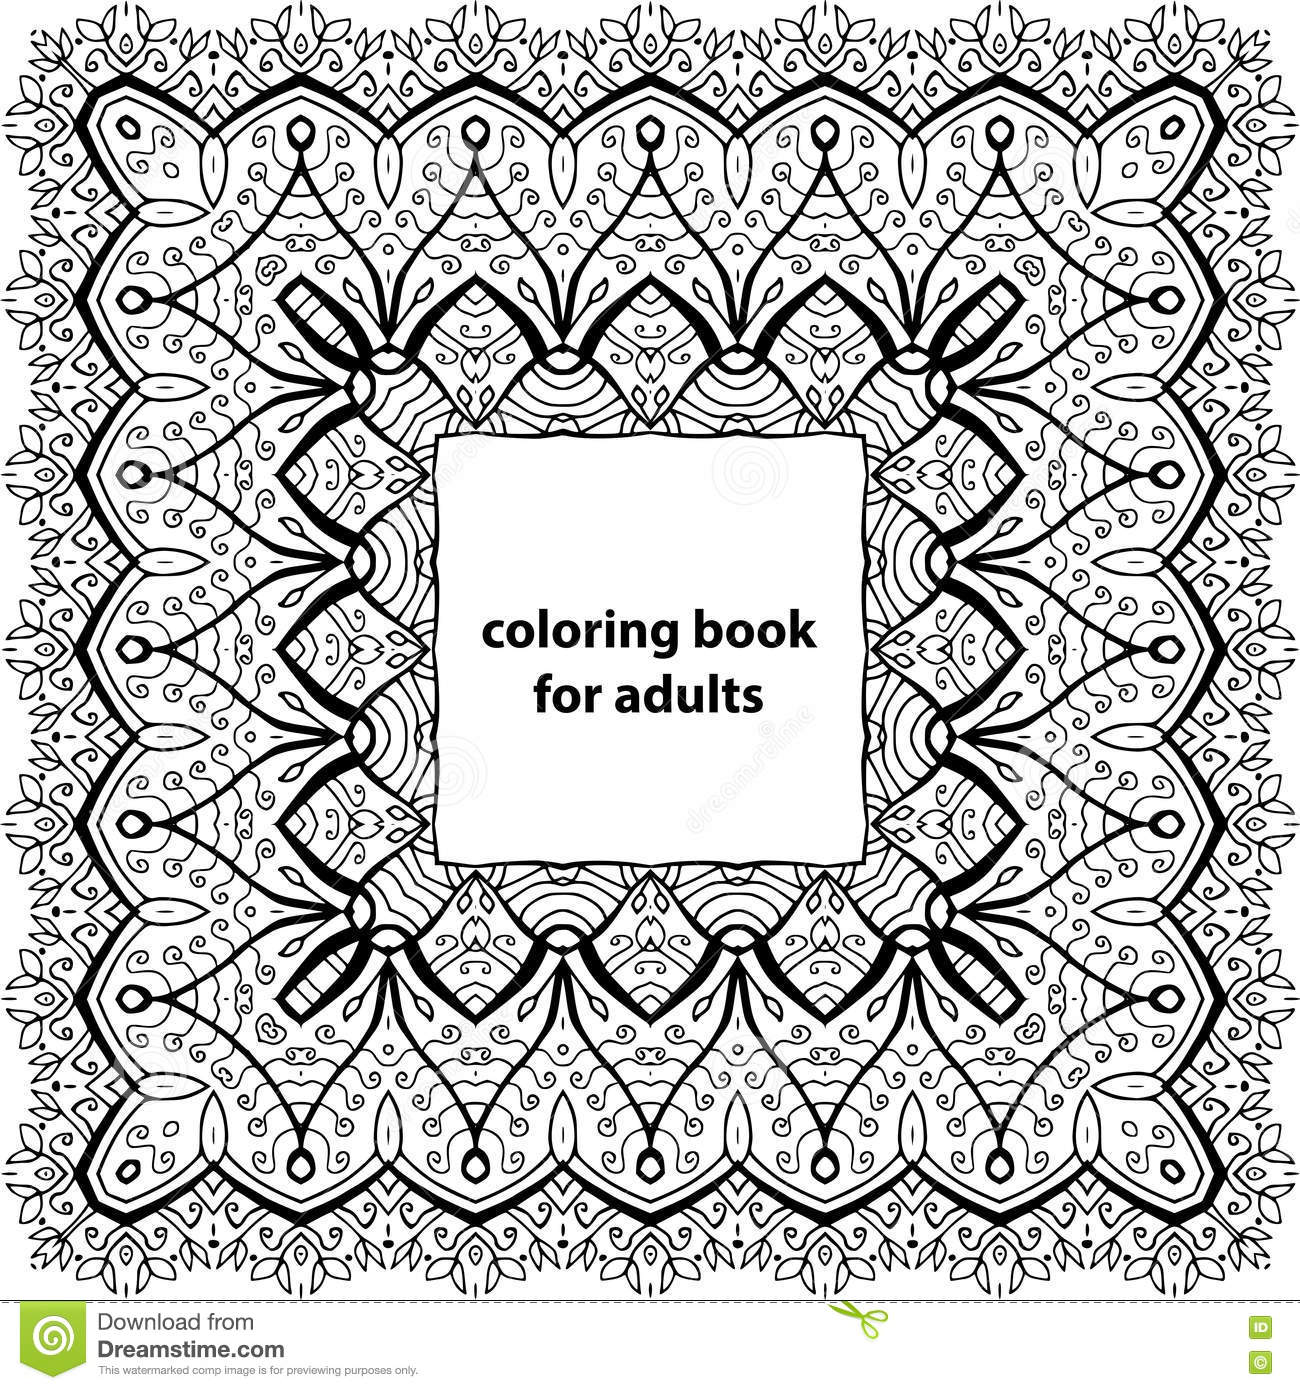 Coloring Book For Adults Zentangle Tribal Patterns Zenart